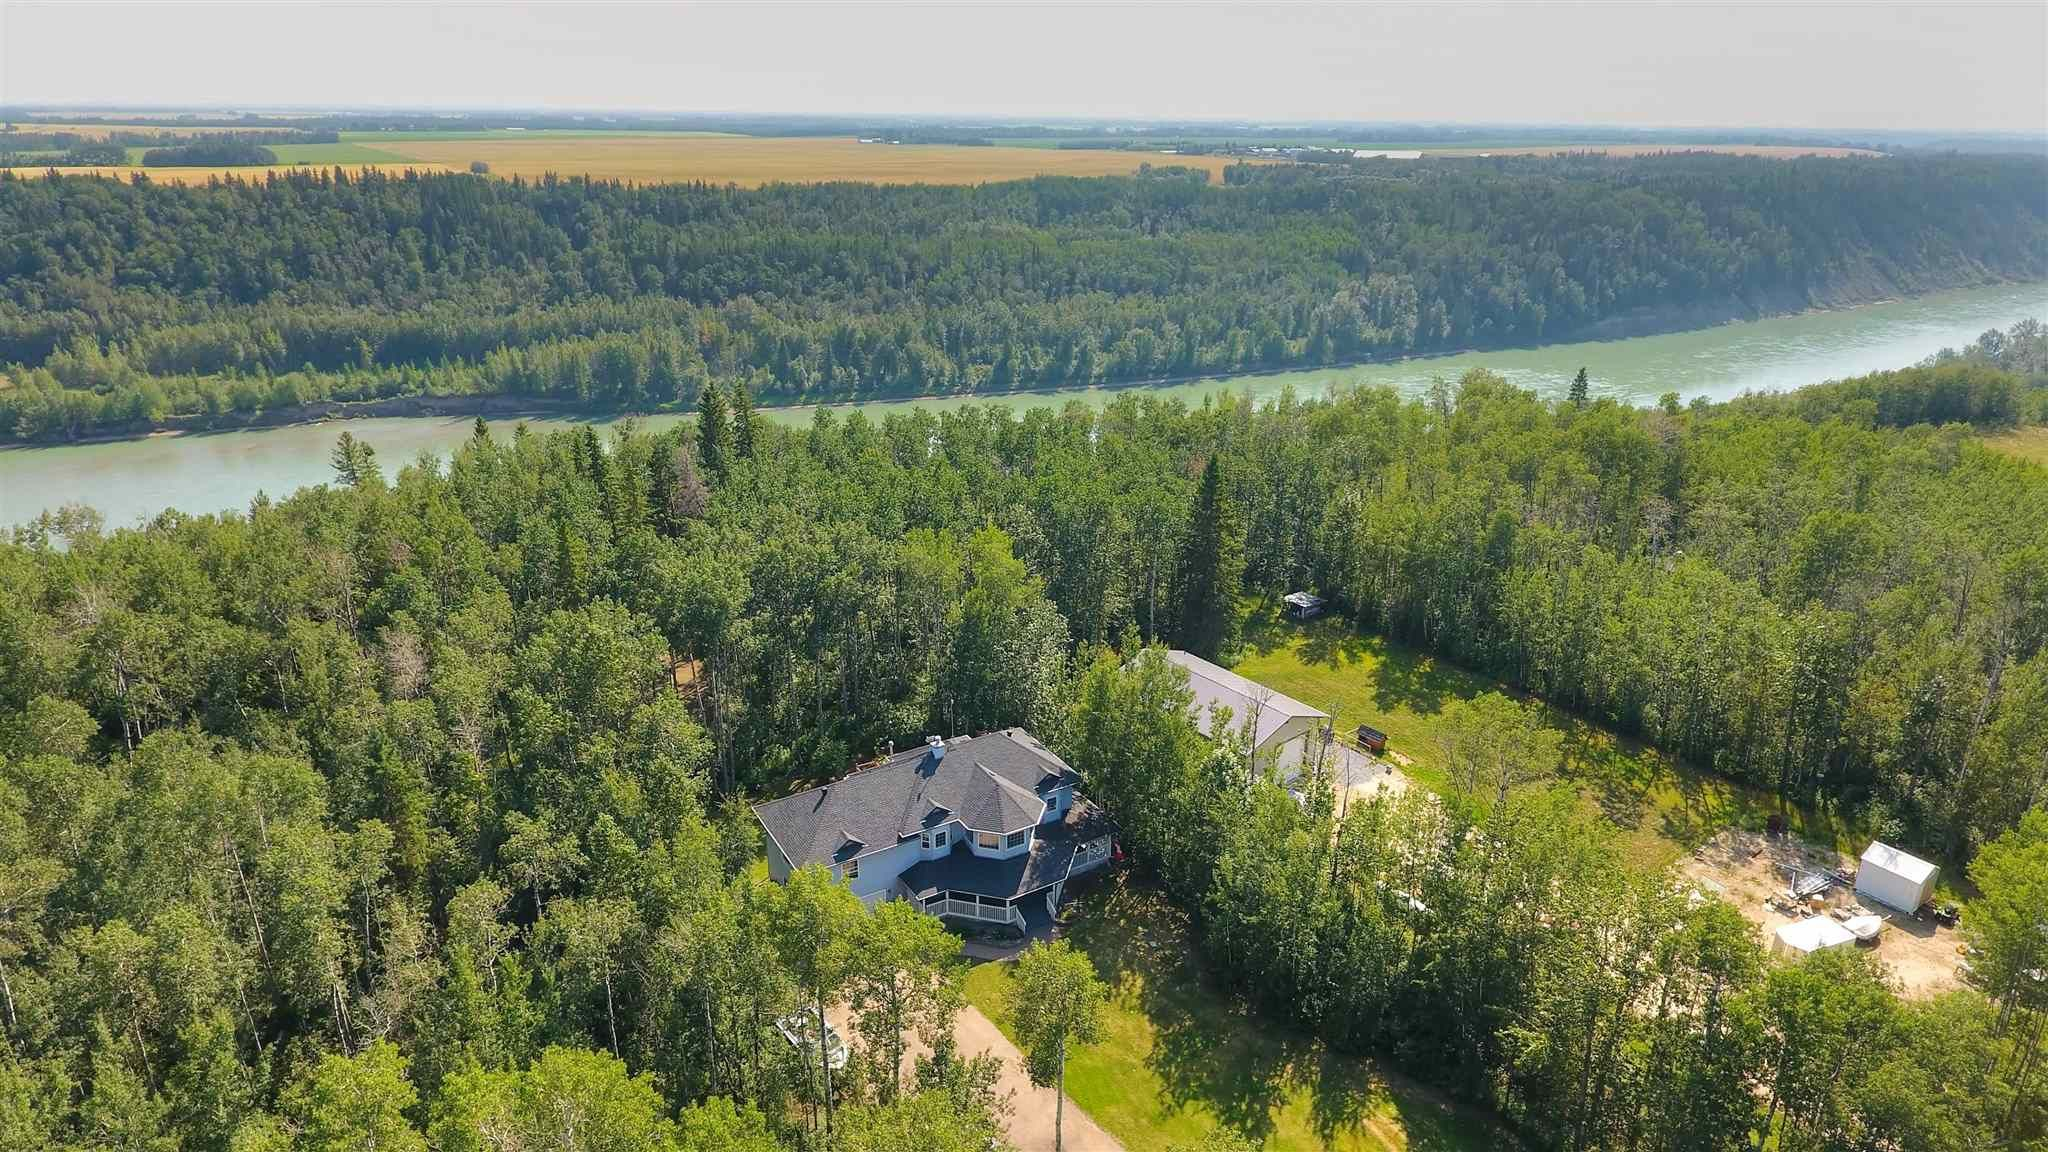 Main Photo: 11 50410 RGE RD 275: Rural Parkland County House for sale : MLS®# E4256441